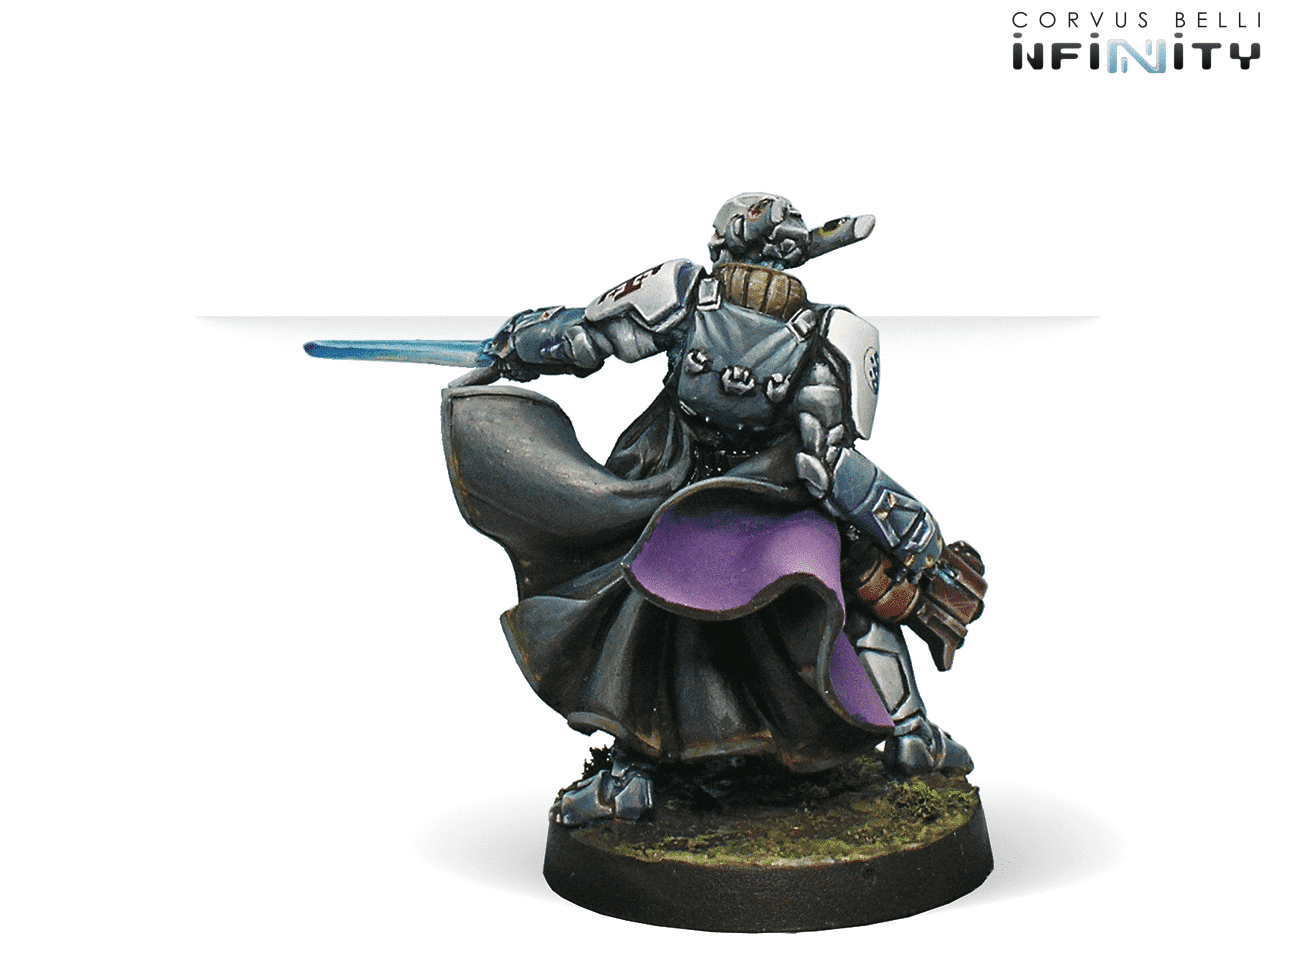 Infinity Corvus Belli Knight of the Holy Sepulchre Spitfire